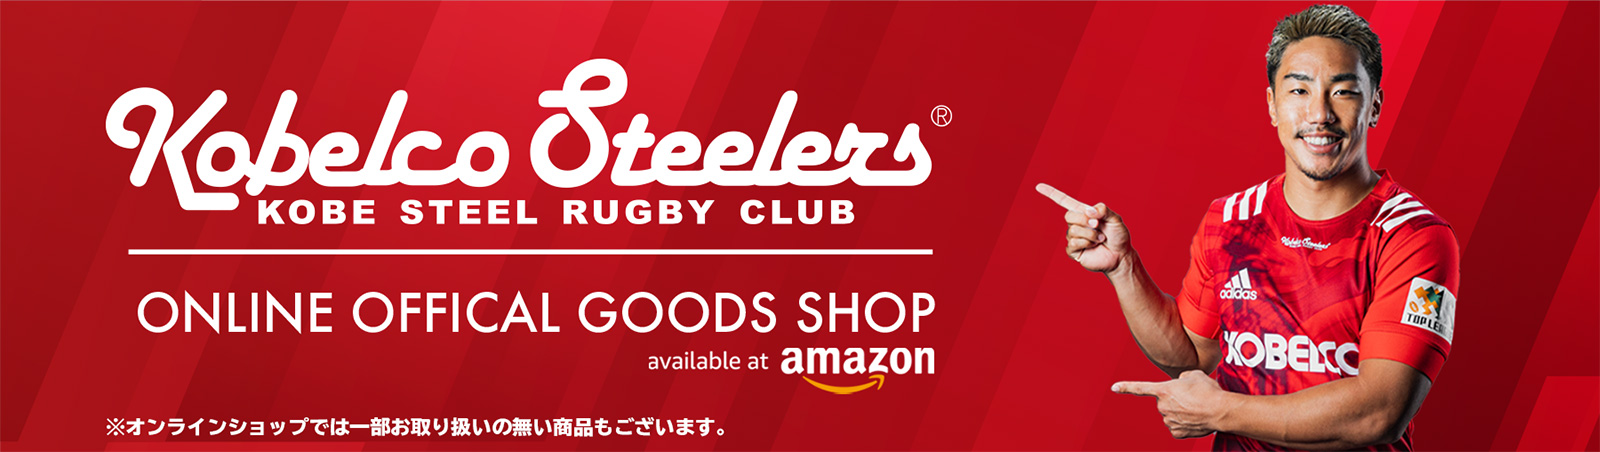 kobelco steelers ONLINE OFFICIAL GOODS SHOP